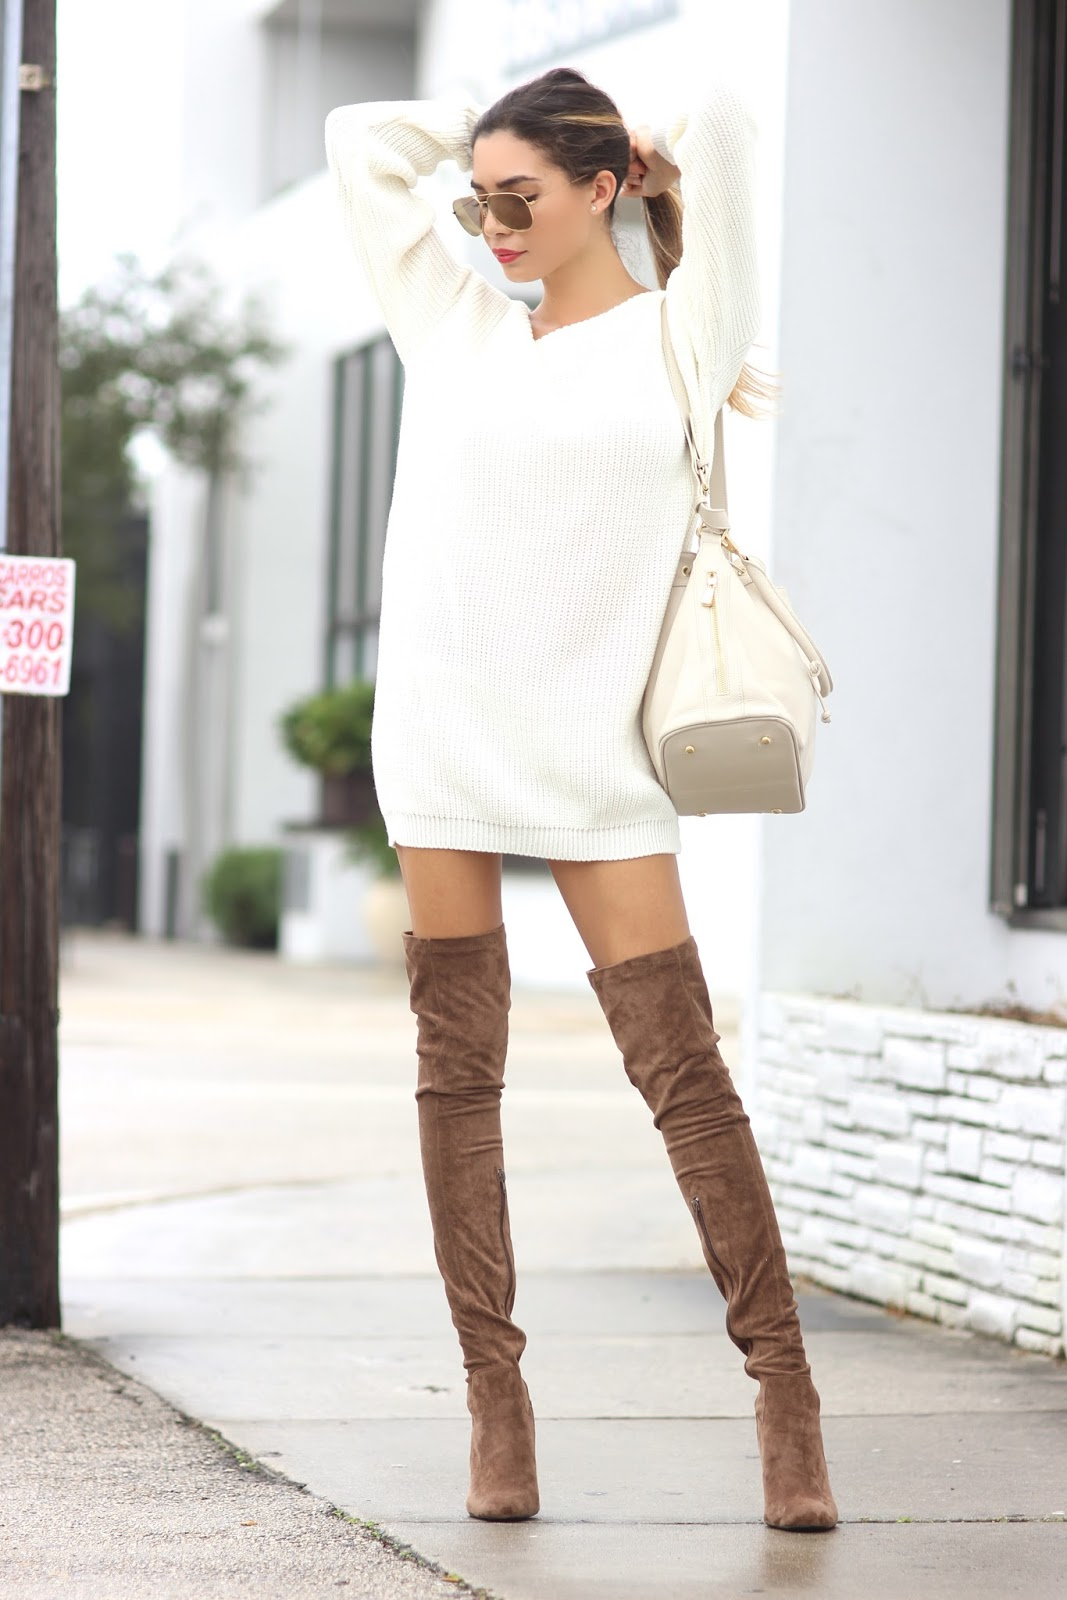 tosh lately sweater dress x thigh high boots weather